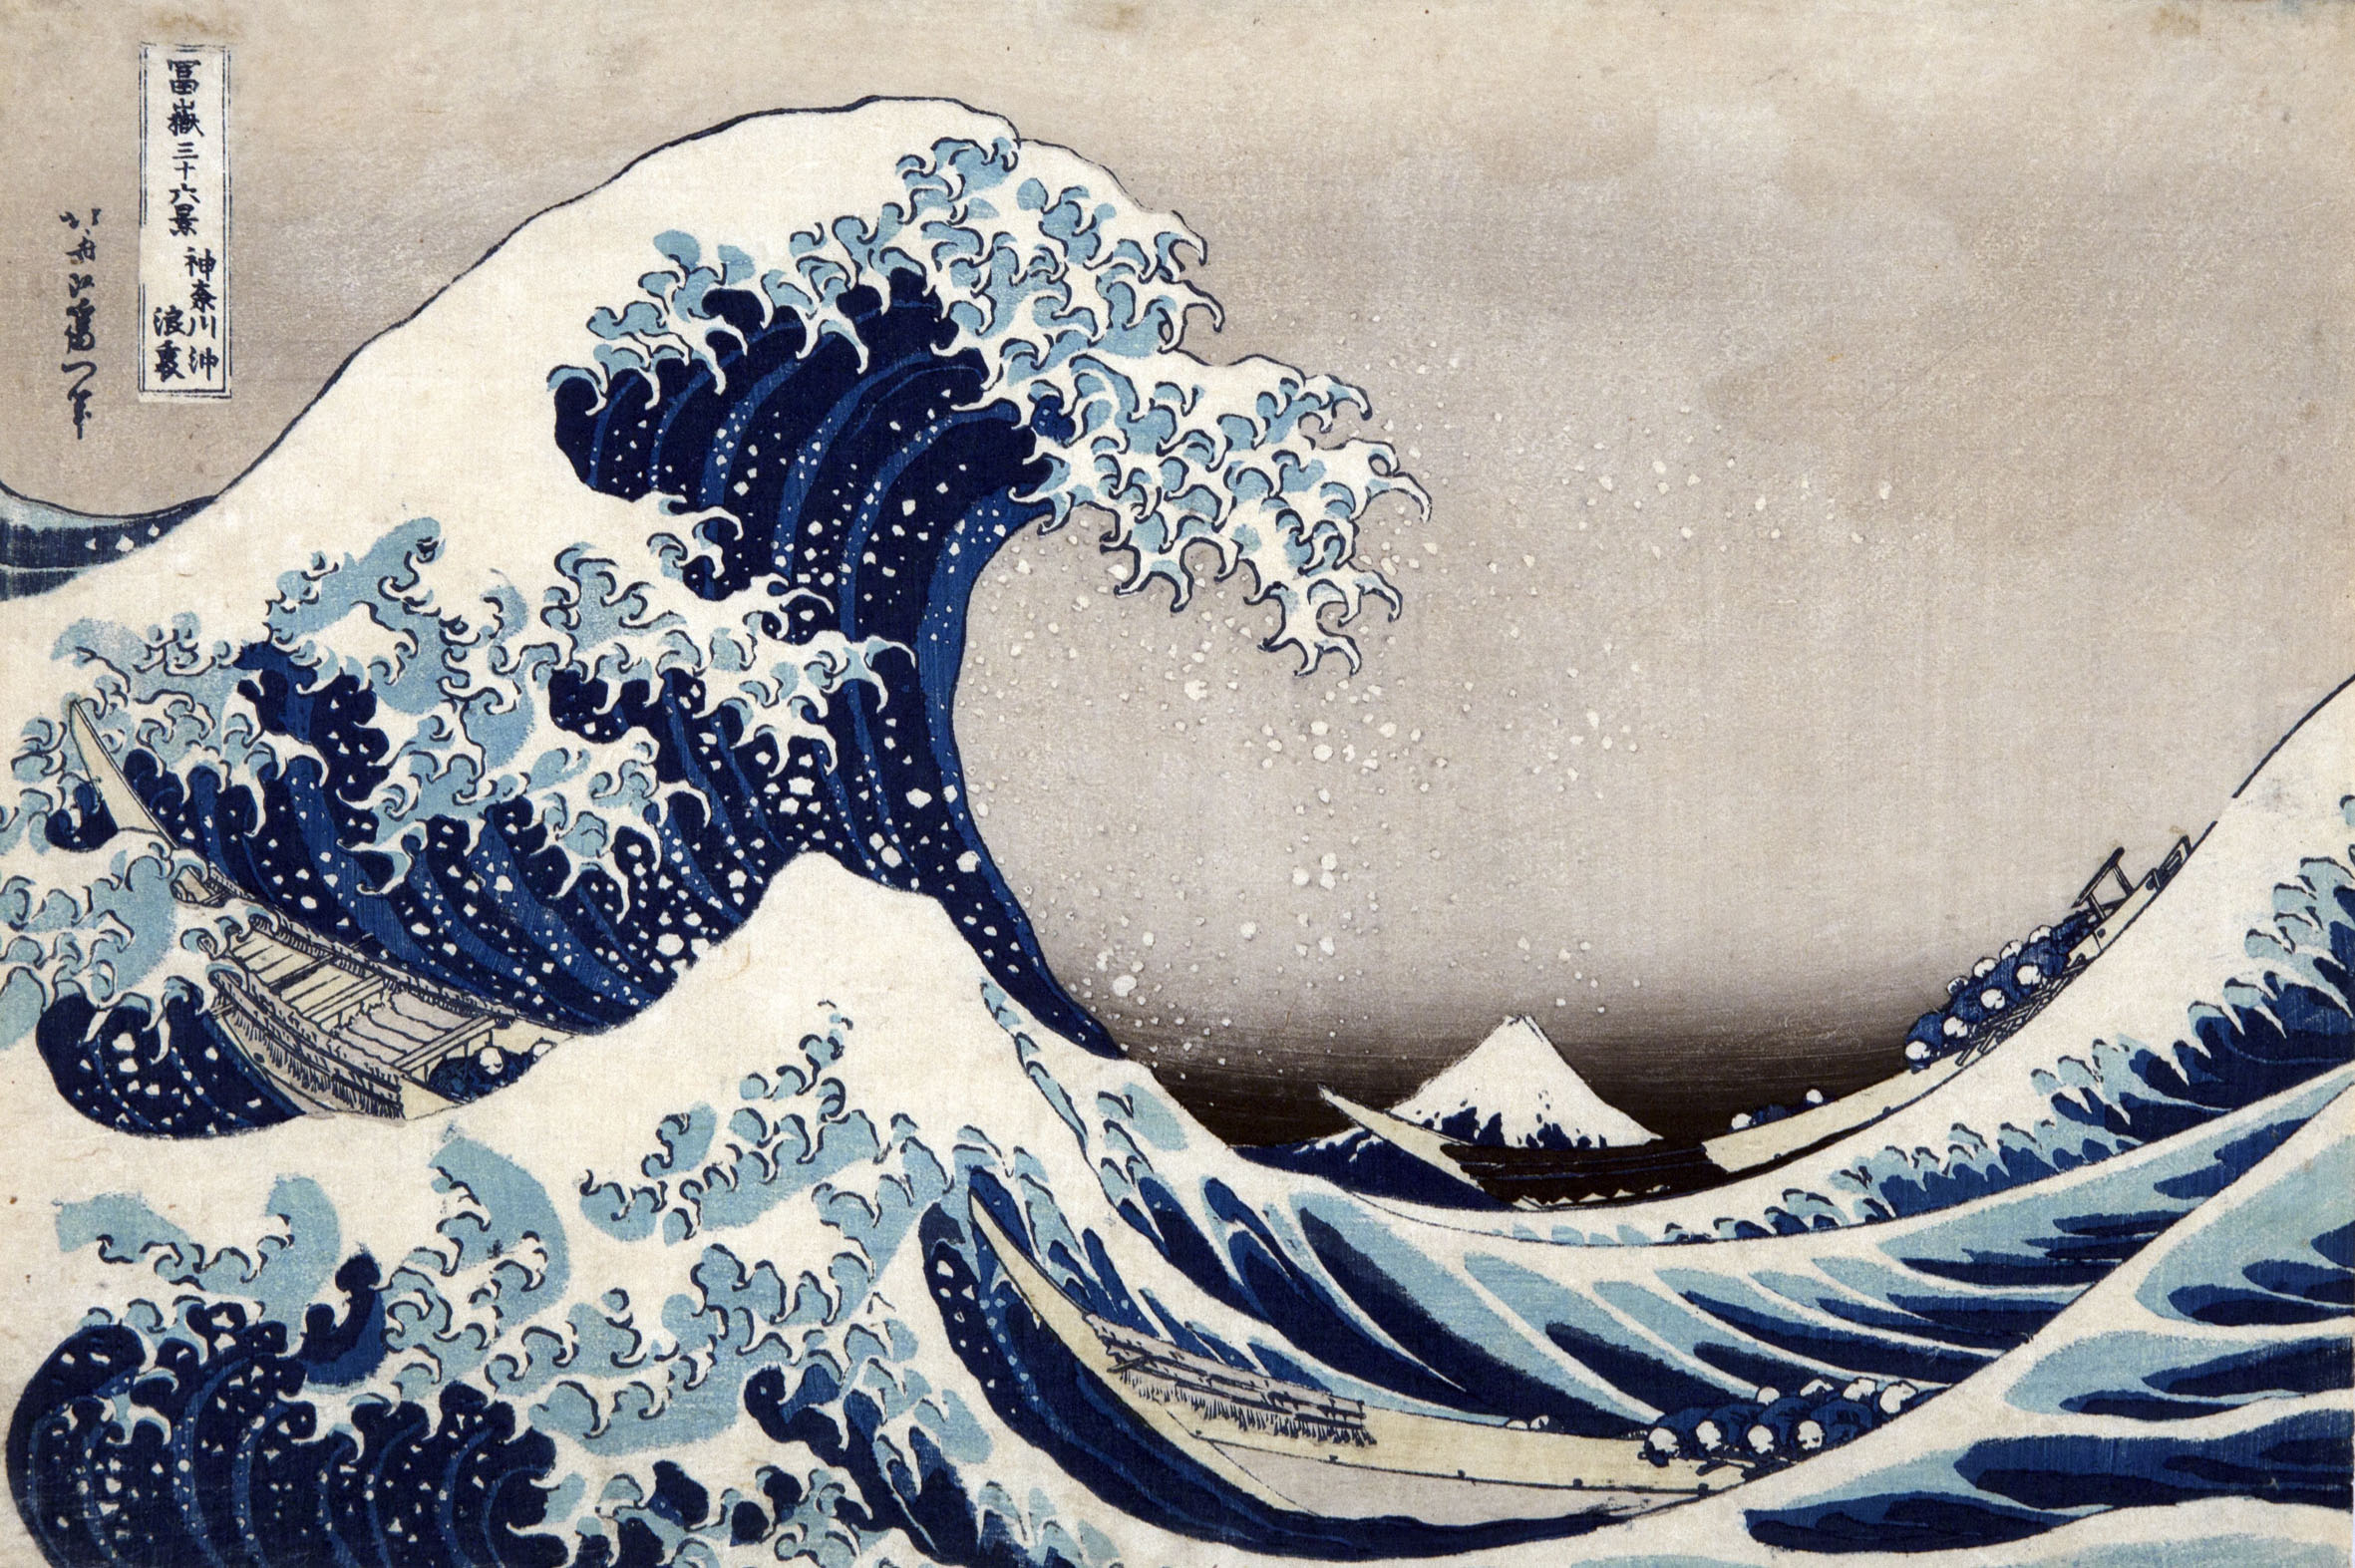 hokusai's great wabe